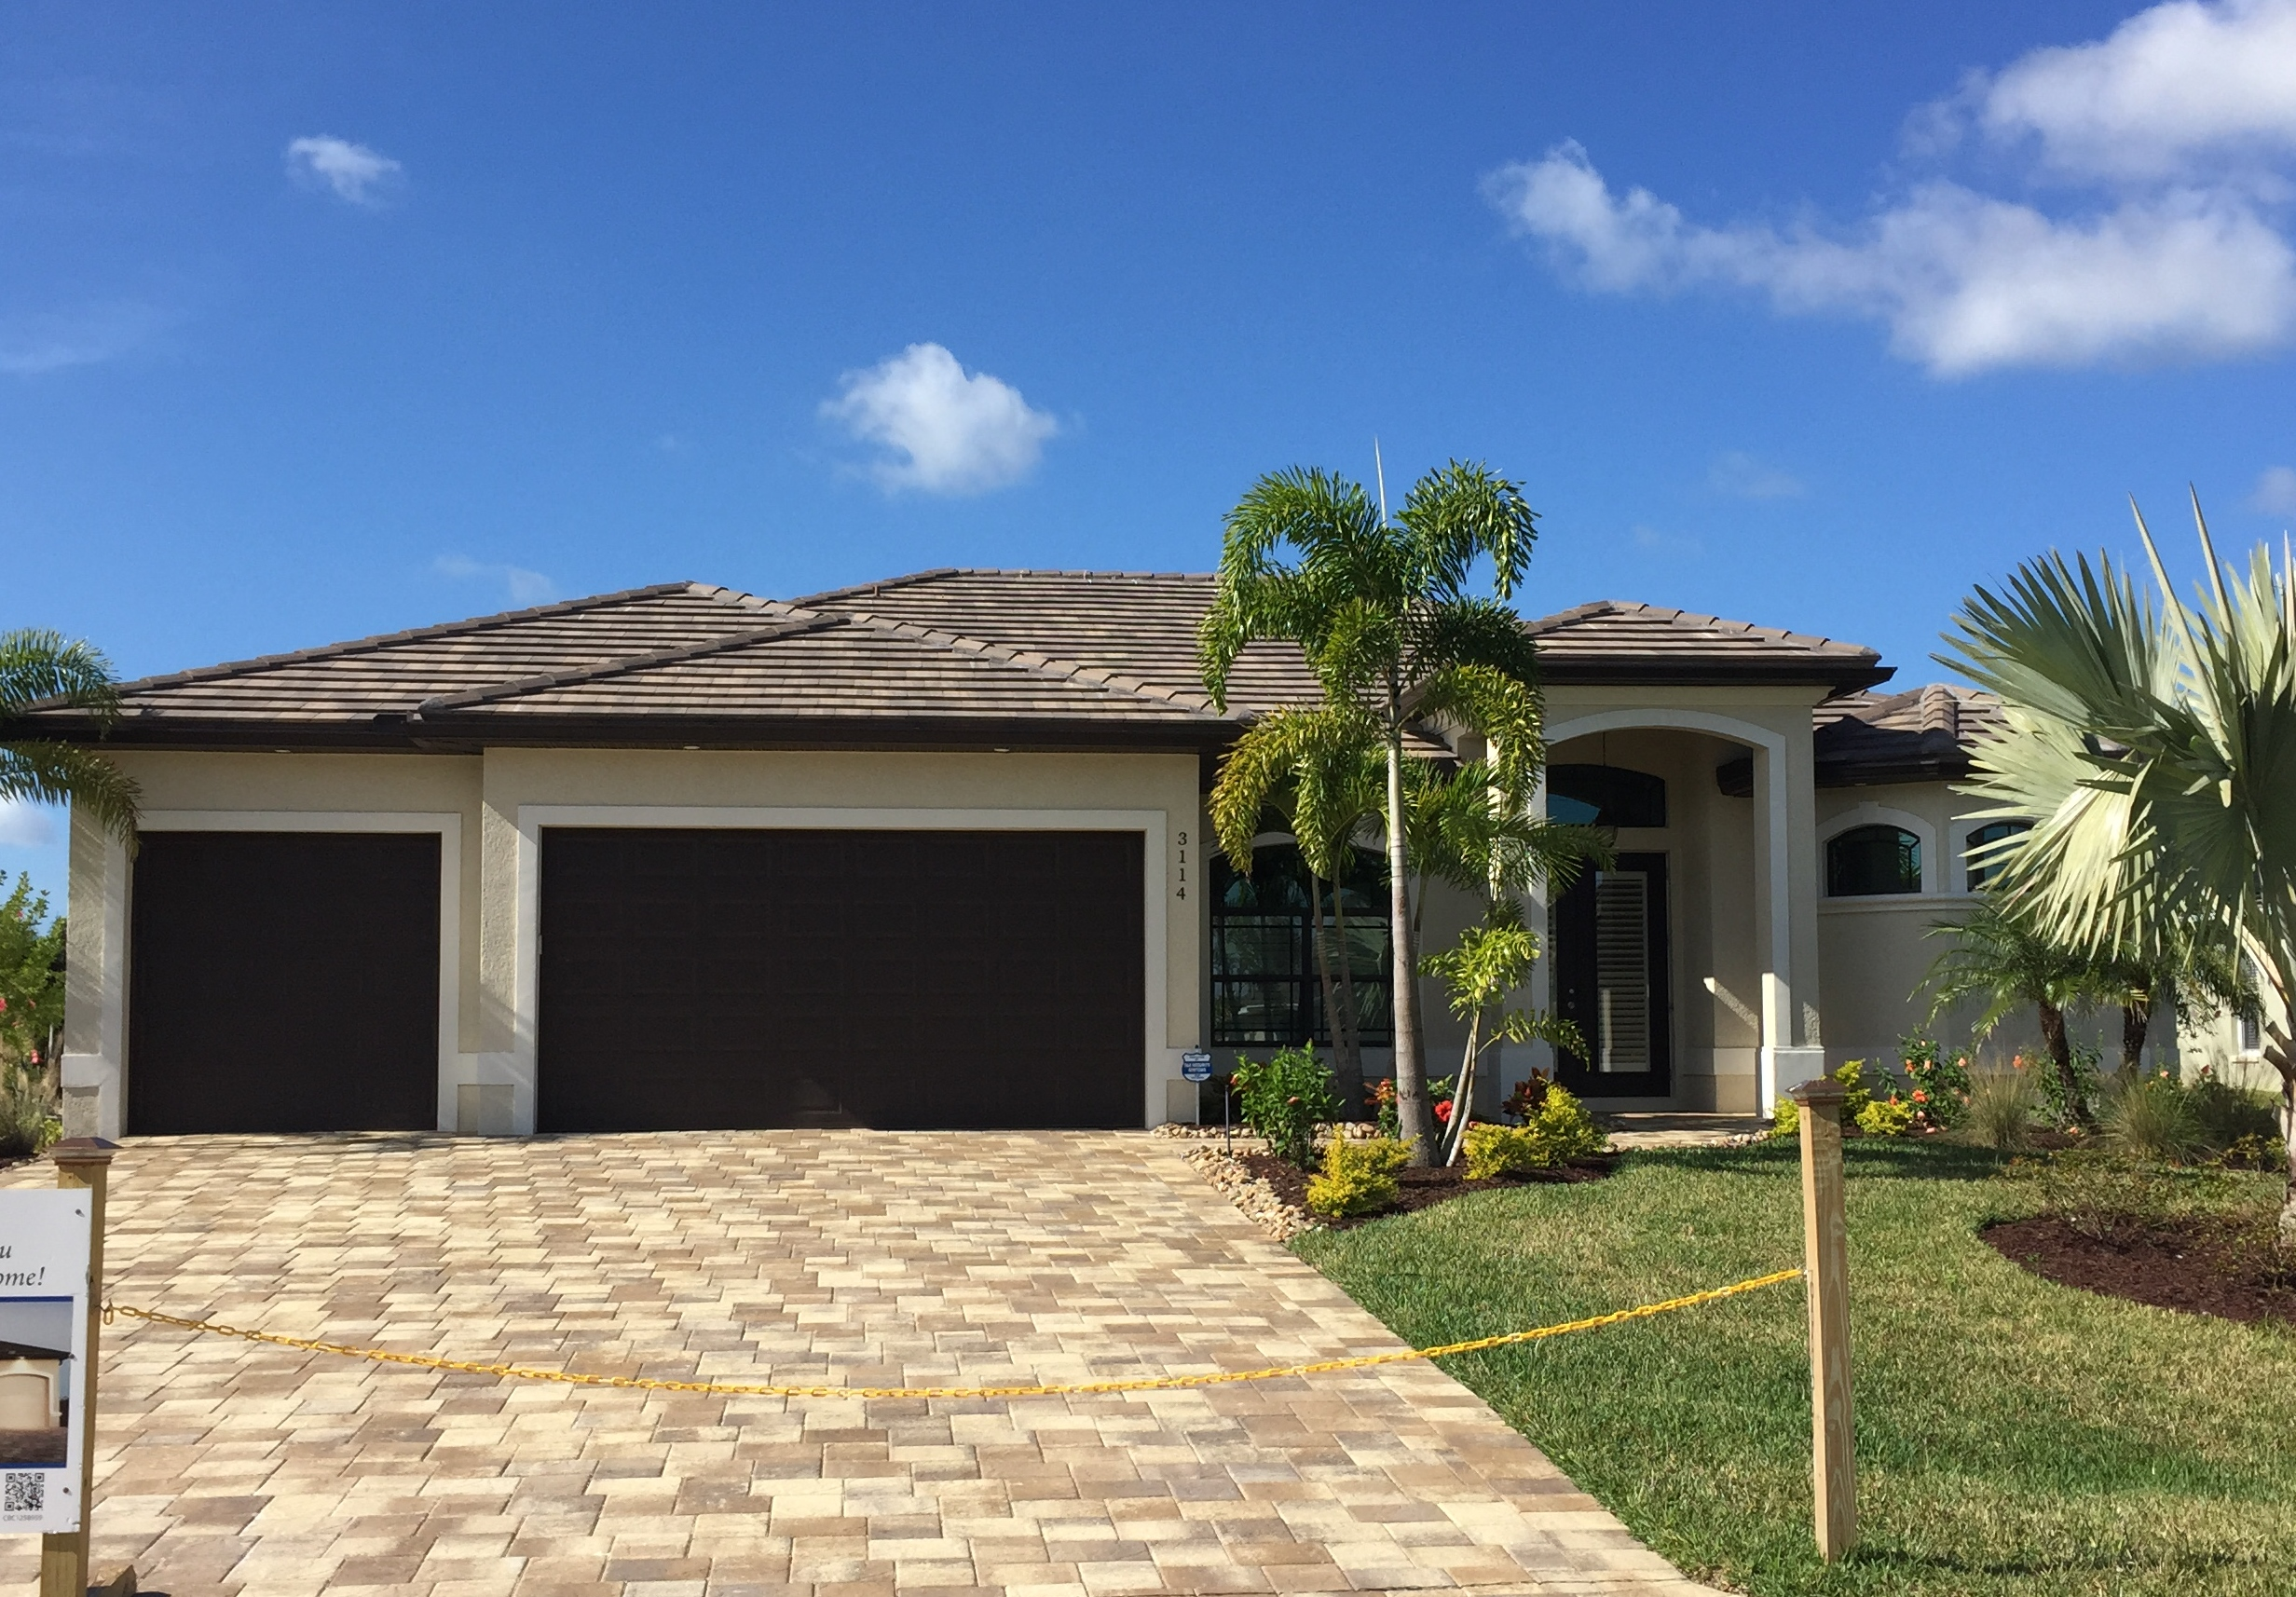 New homes for sale in cape coral fl for House for sale pictures